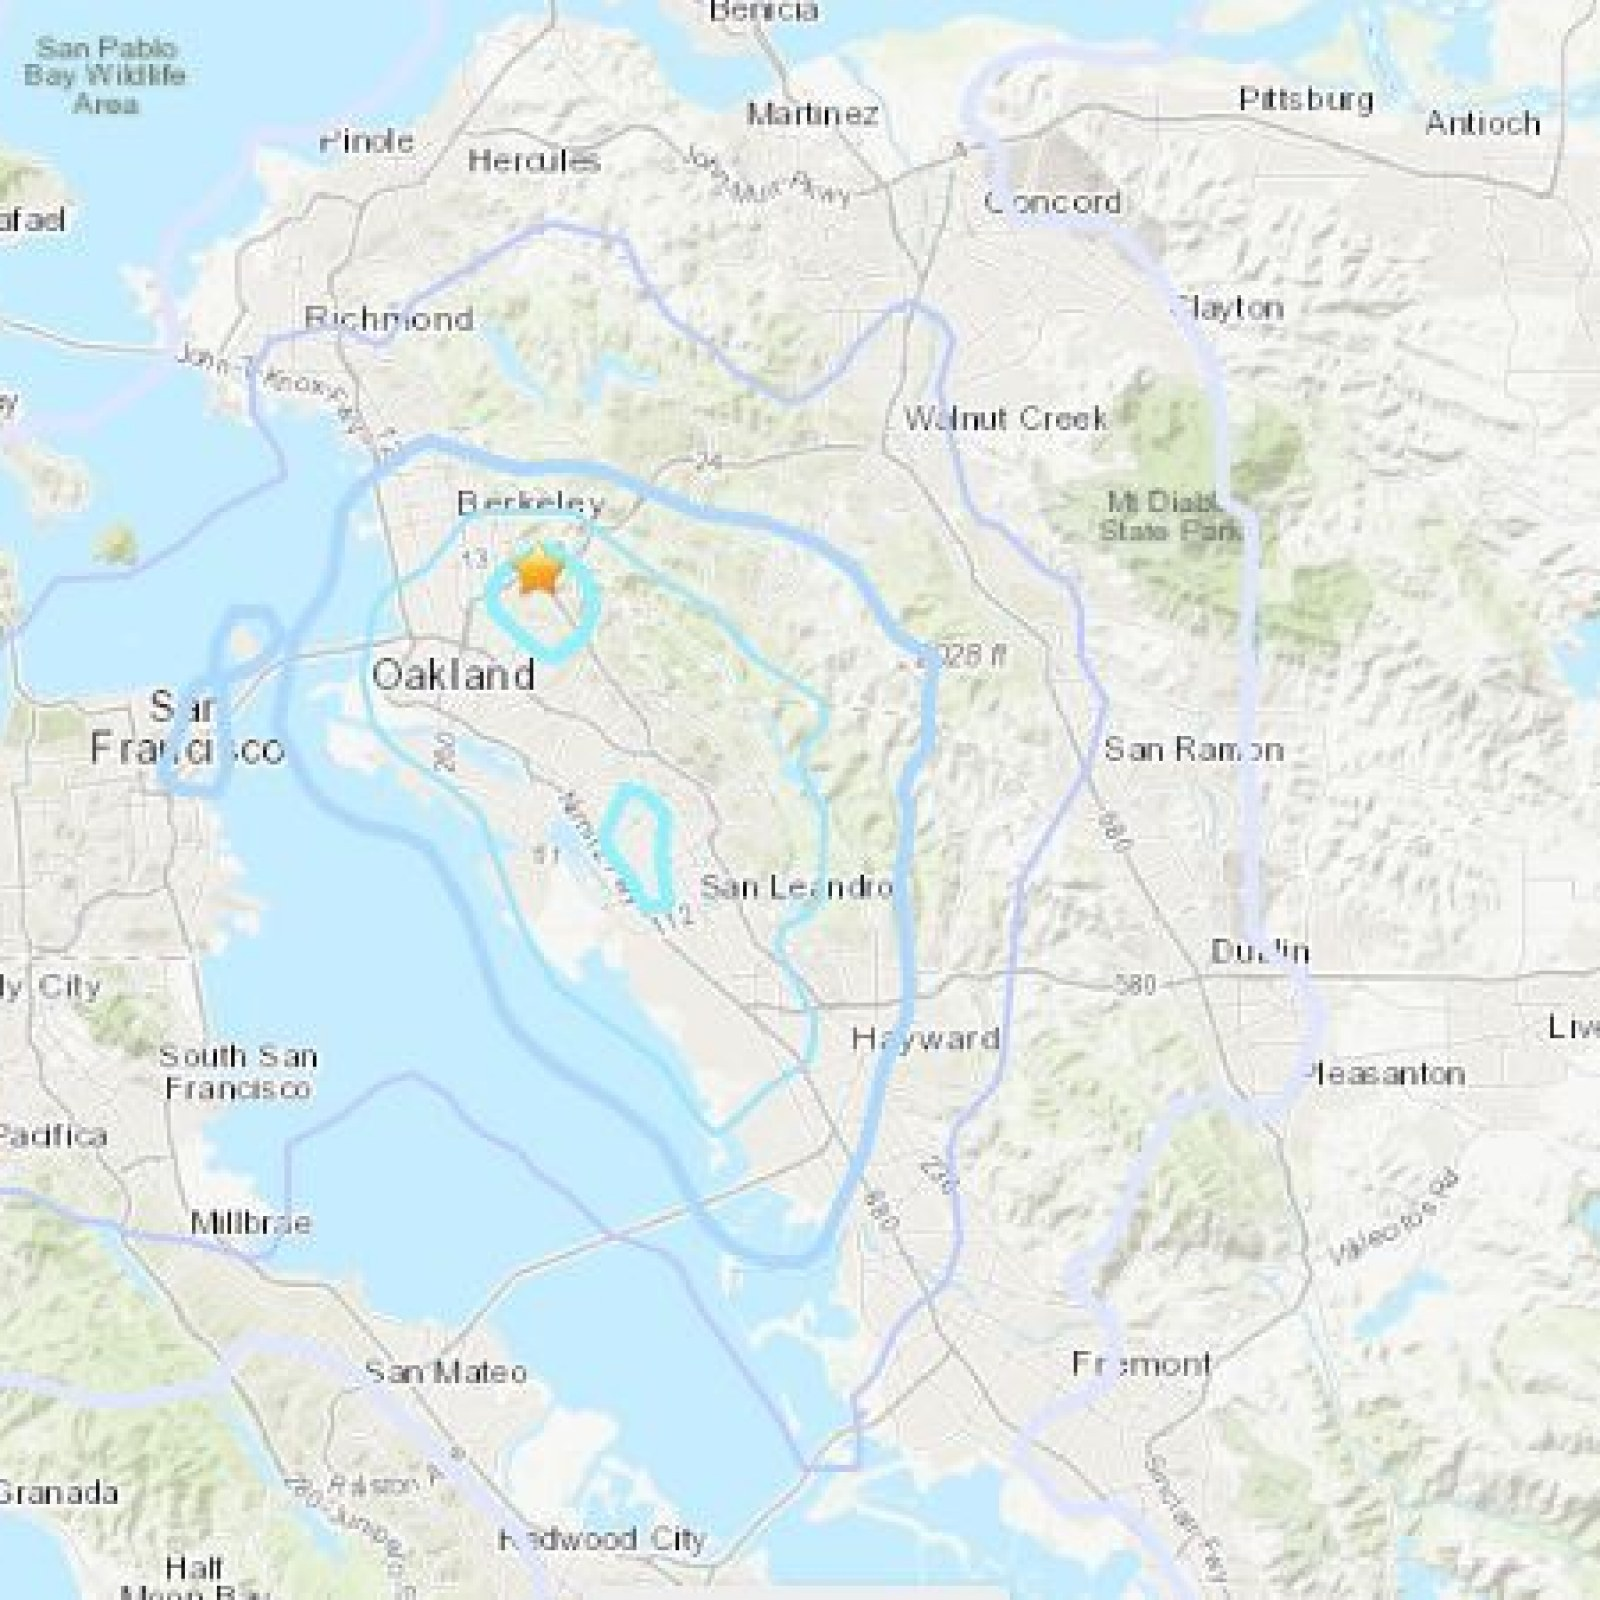 Piedmont California Earthquake Magnitude 3 4 Bay Area Quake Reported Along Hayward Fault Data from hayward fault virtual tour. bay area quake reported along hayward fault